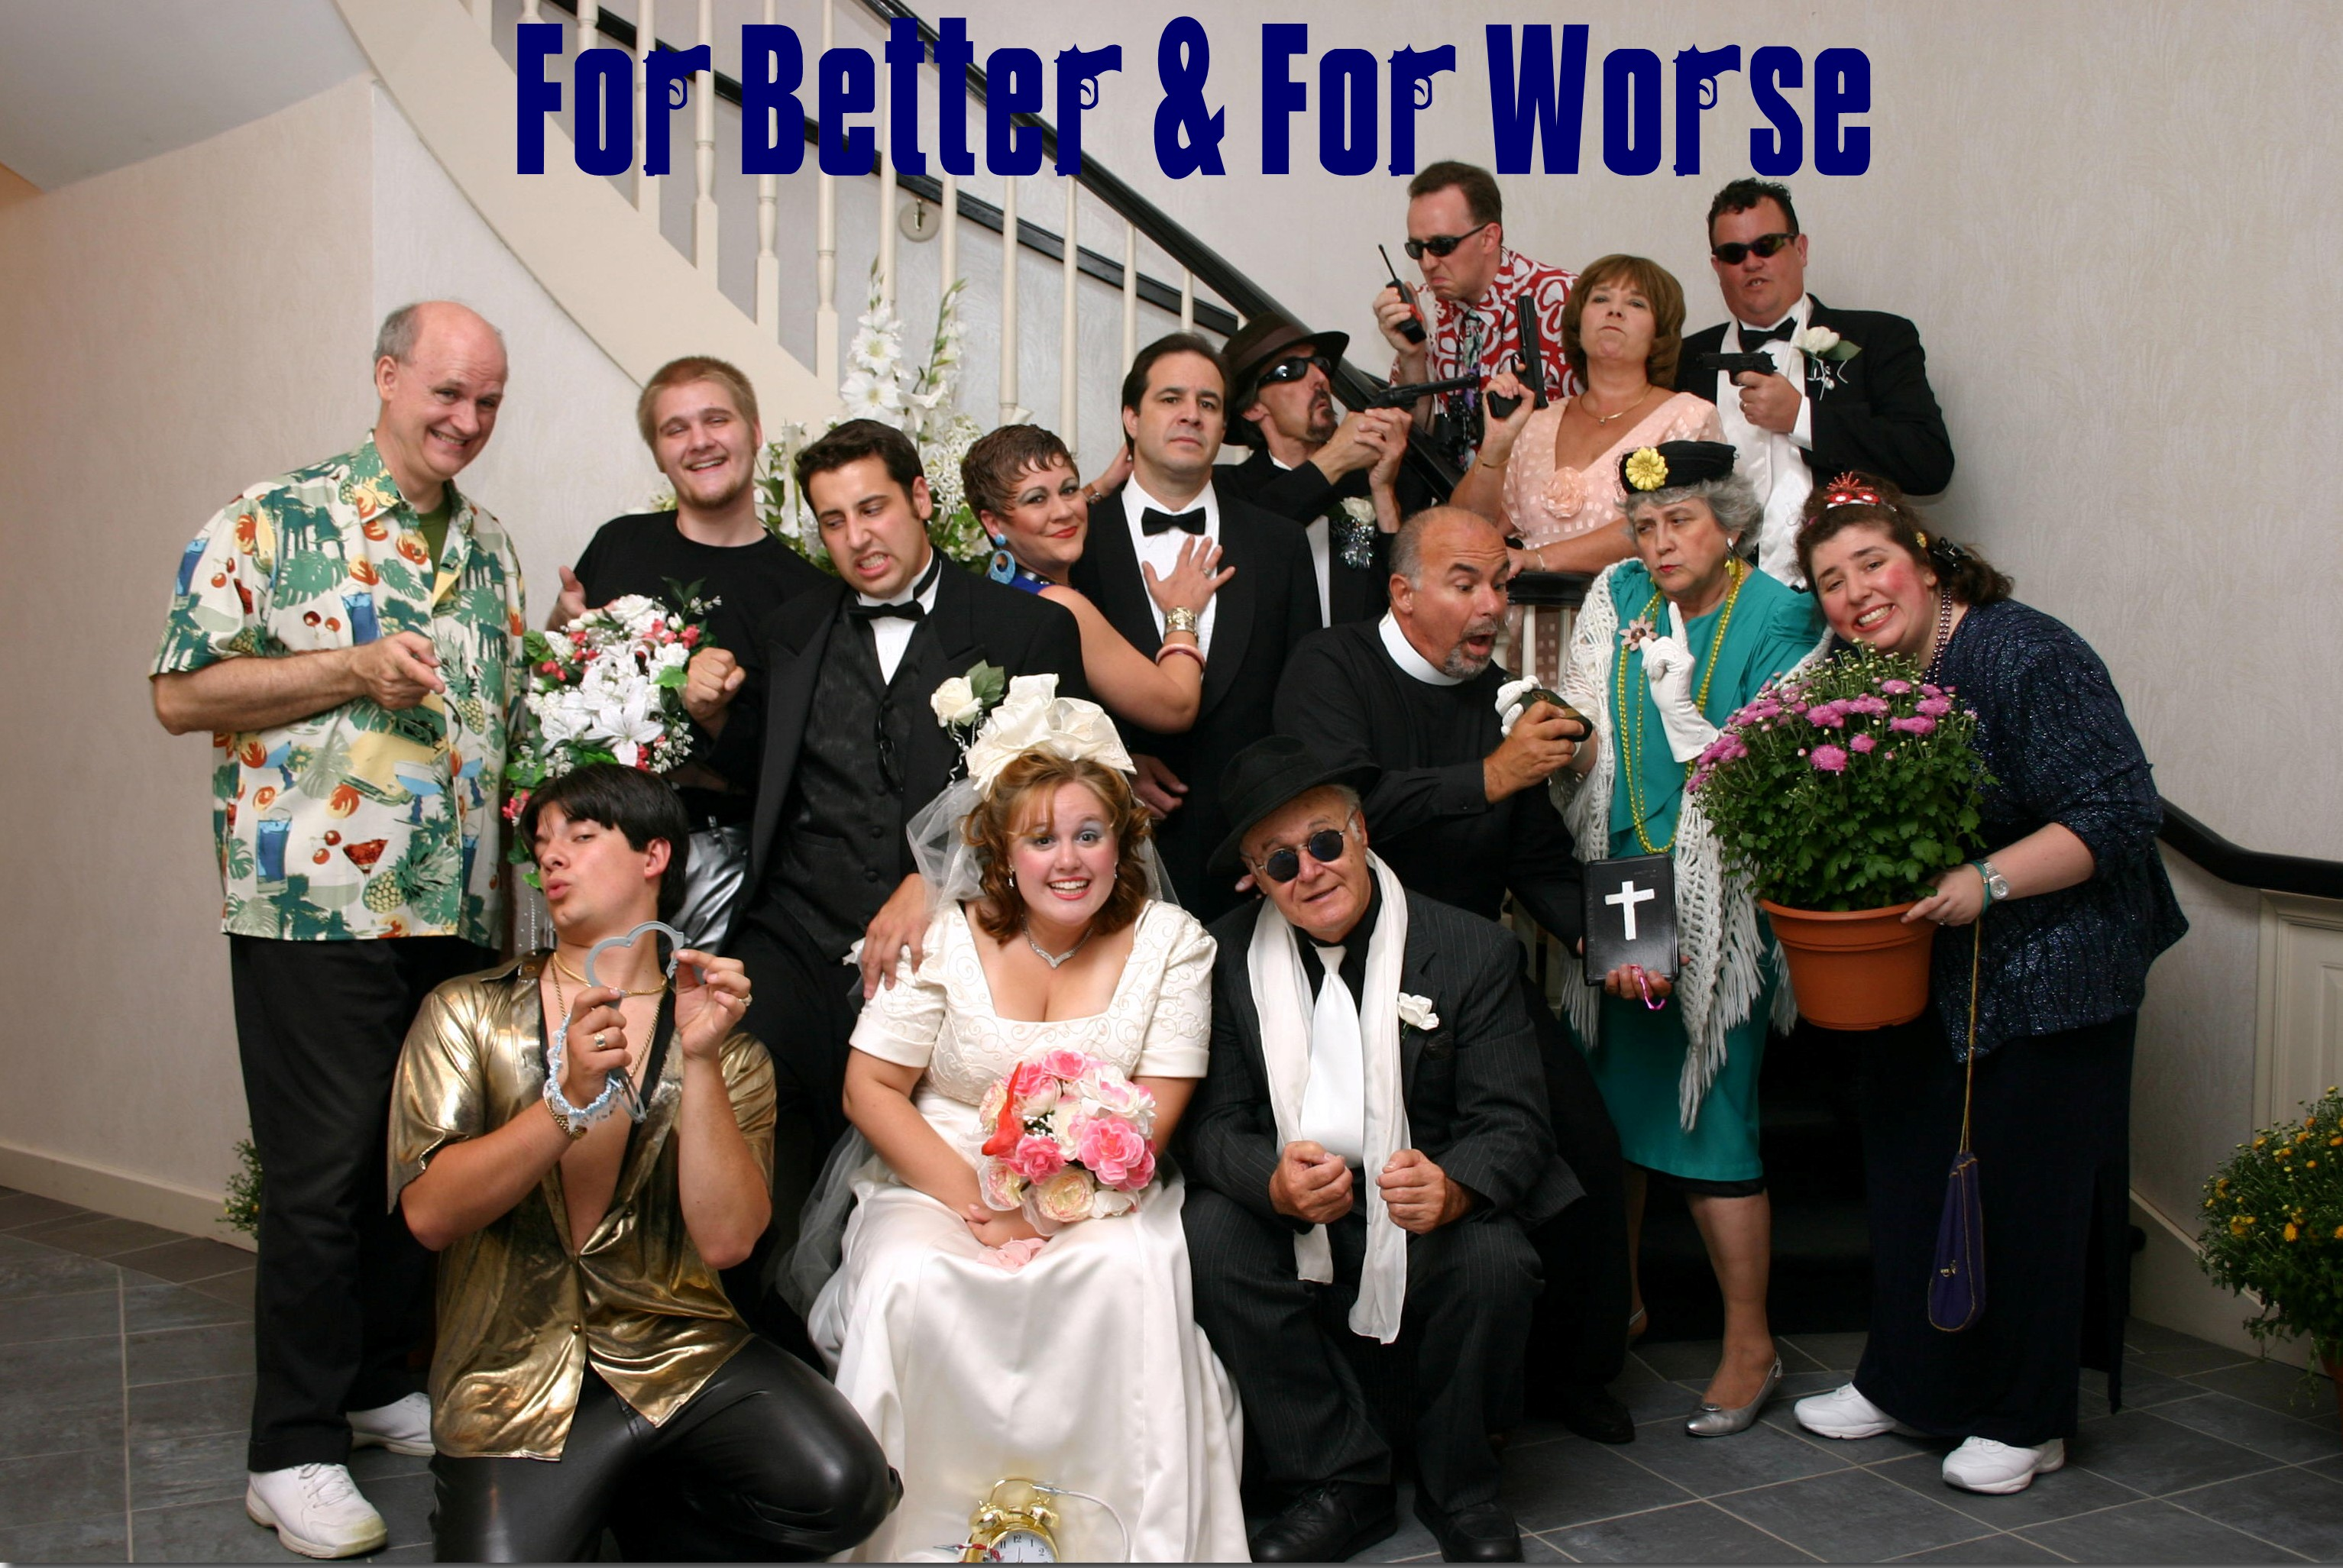 Cast of For Better & For Worse